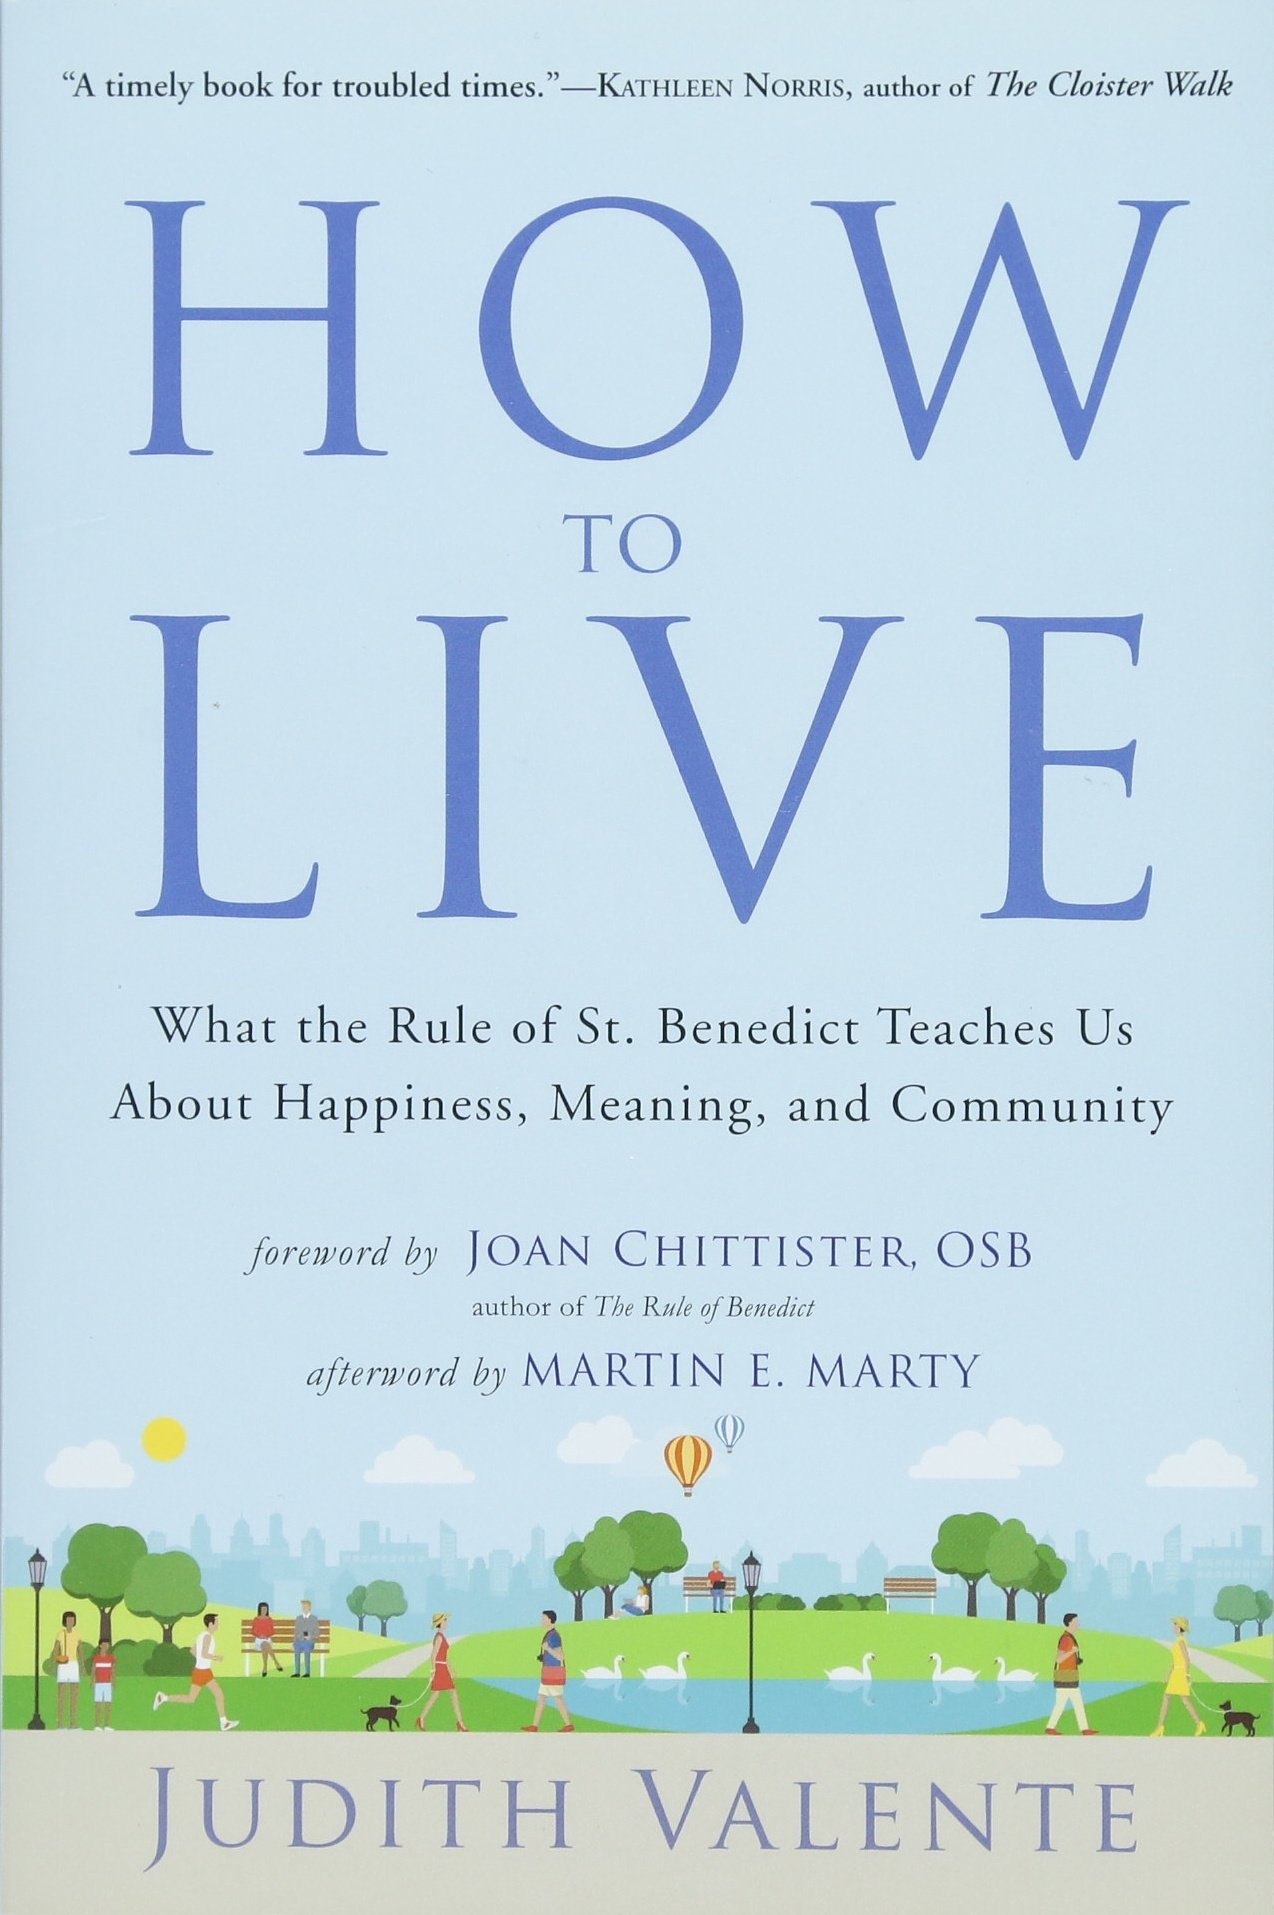 How to live what the rule of st benedict teaches us about how to live what the rule of st benedict teaches us about happiness meaning and community judith valente martin e marty joan chittister fandeluxe Gallery